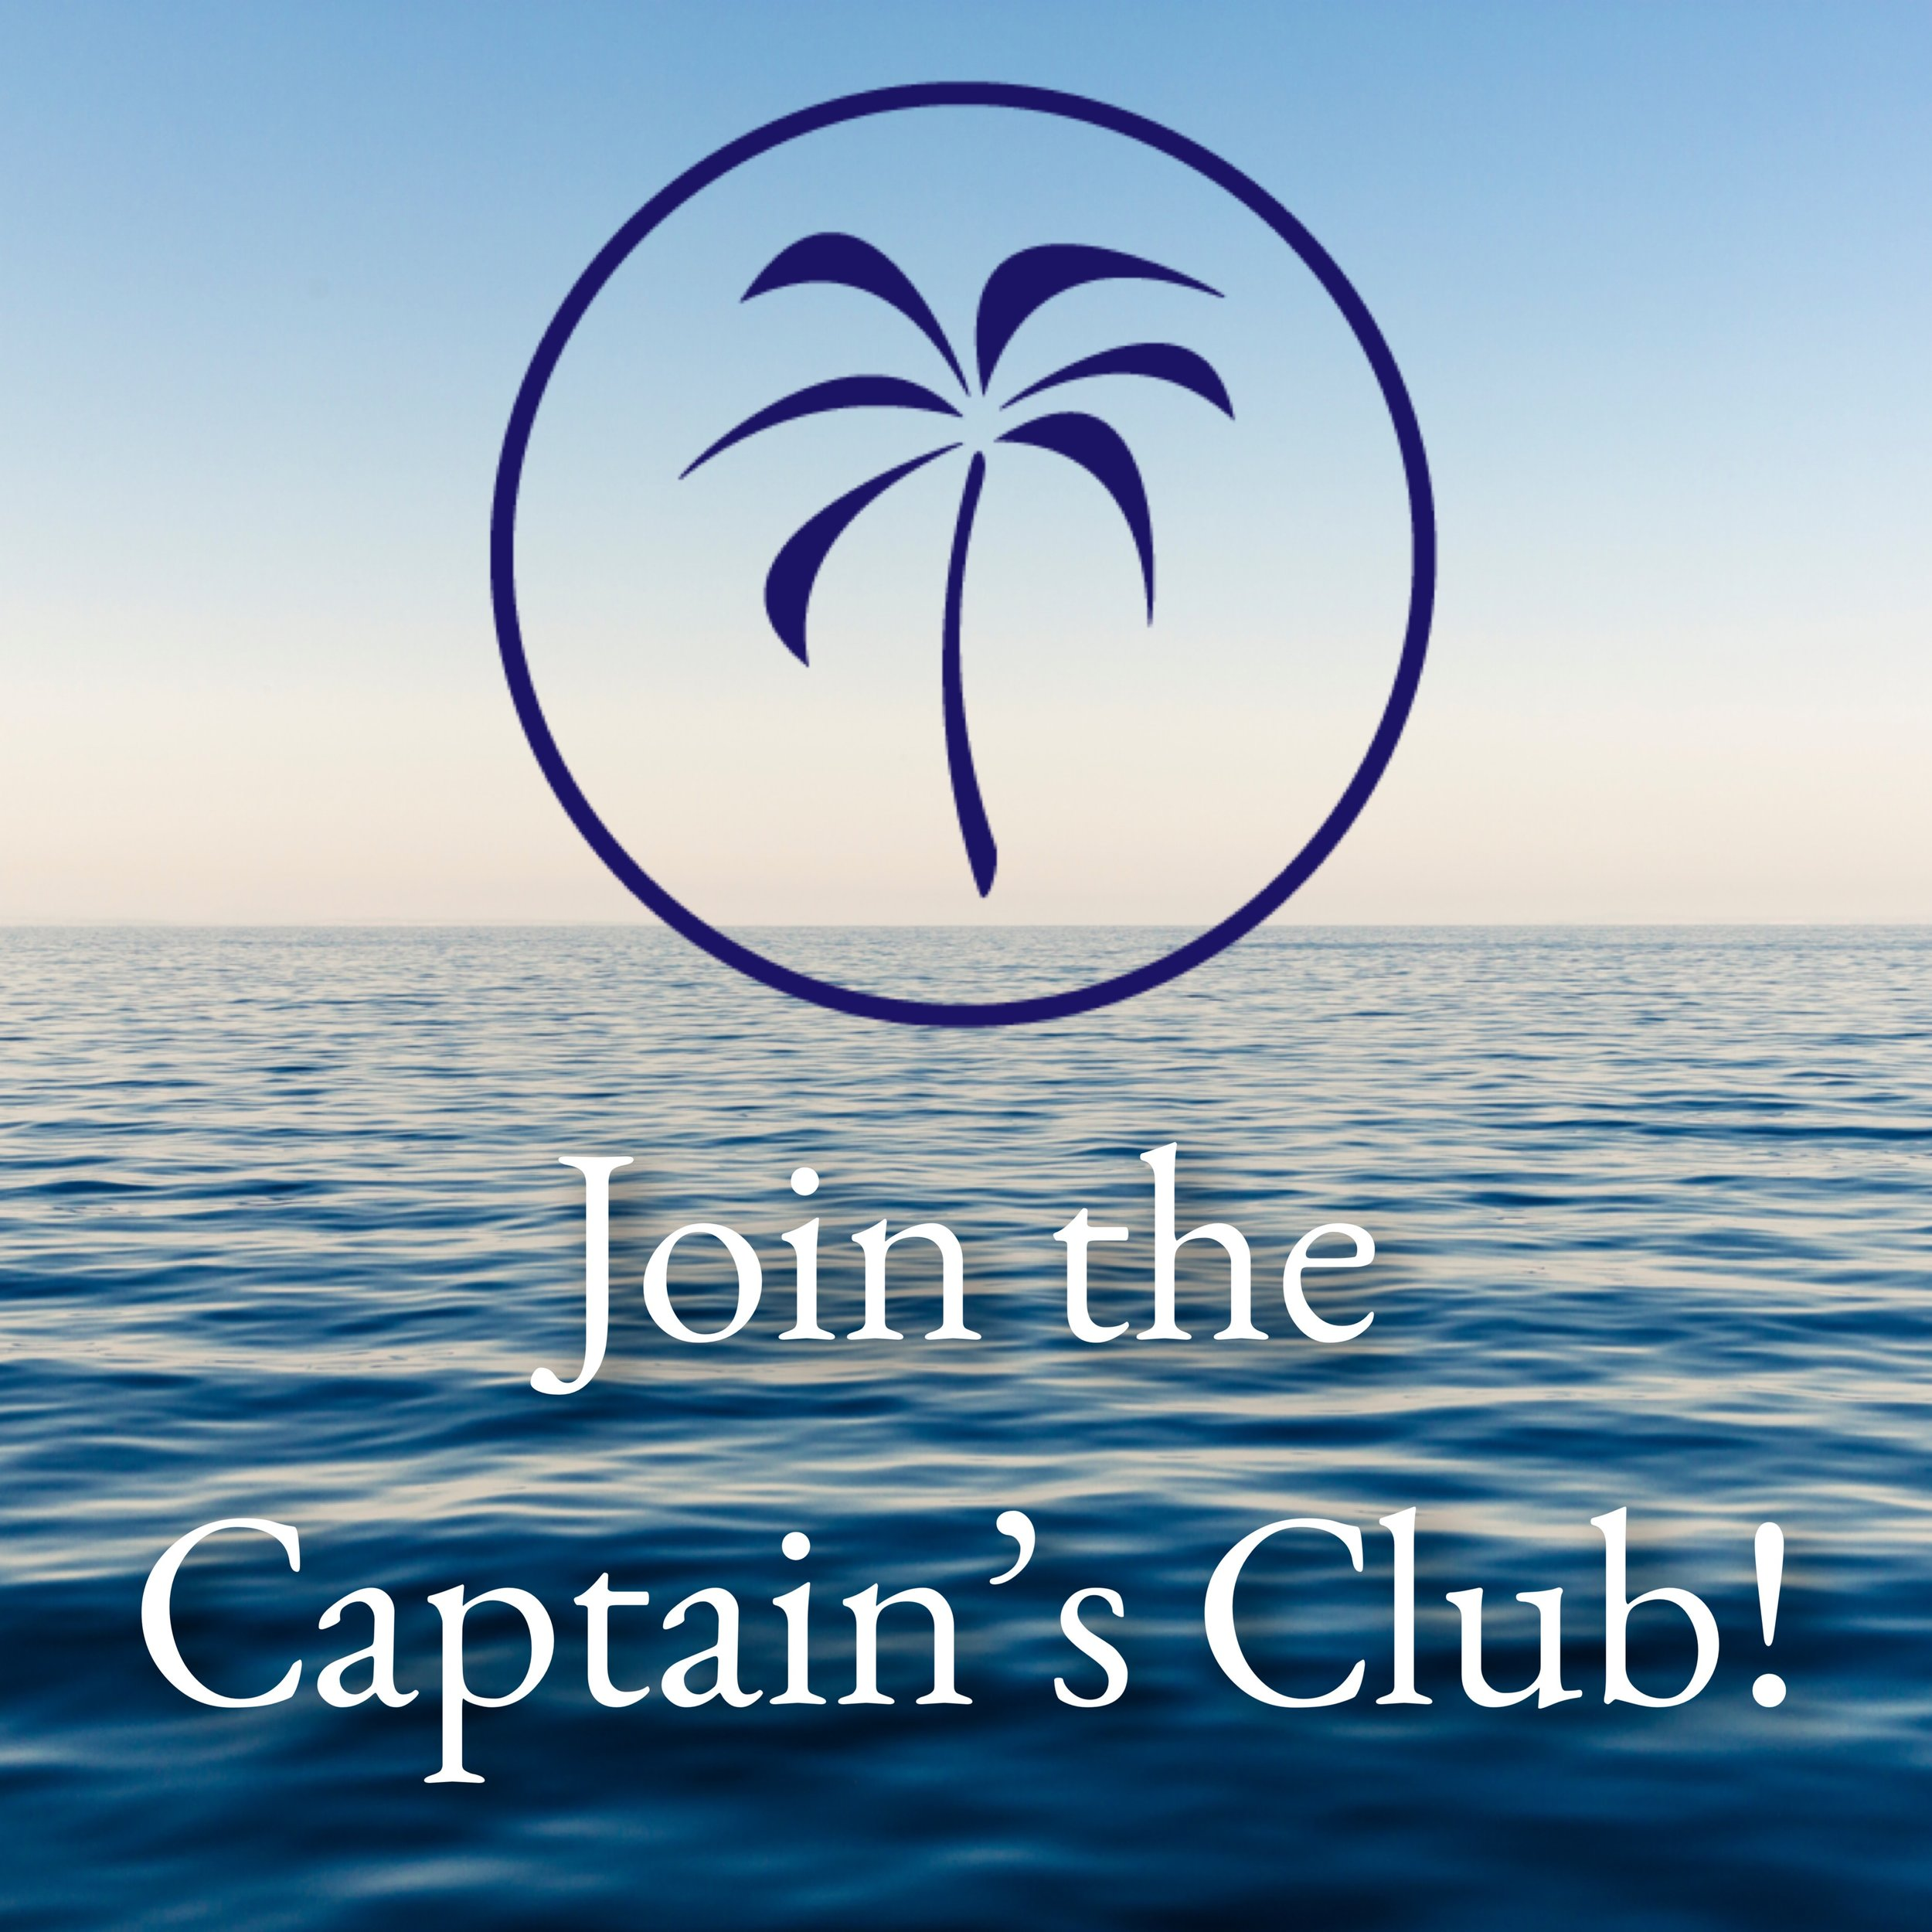 Receive exclusive news, club gear, and the latest on Island life! - You're always the perfect age to join this club!